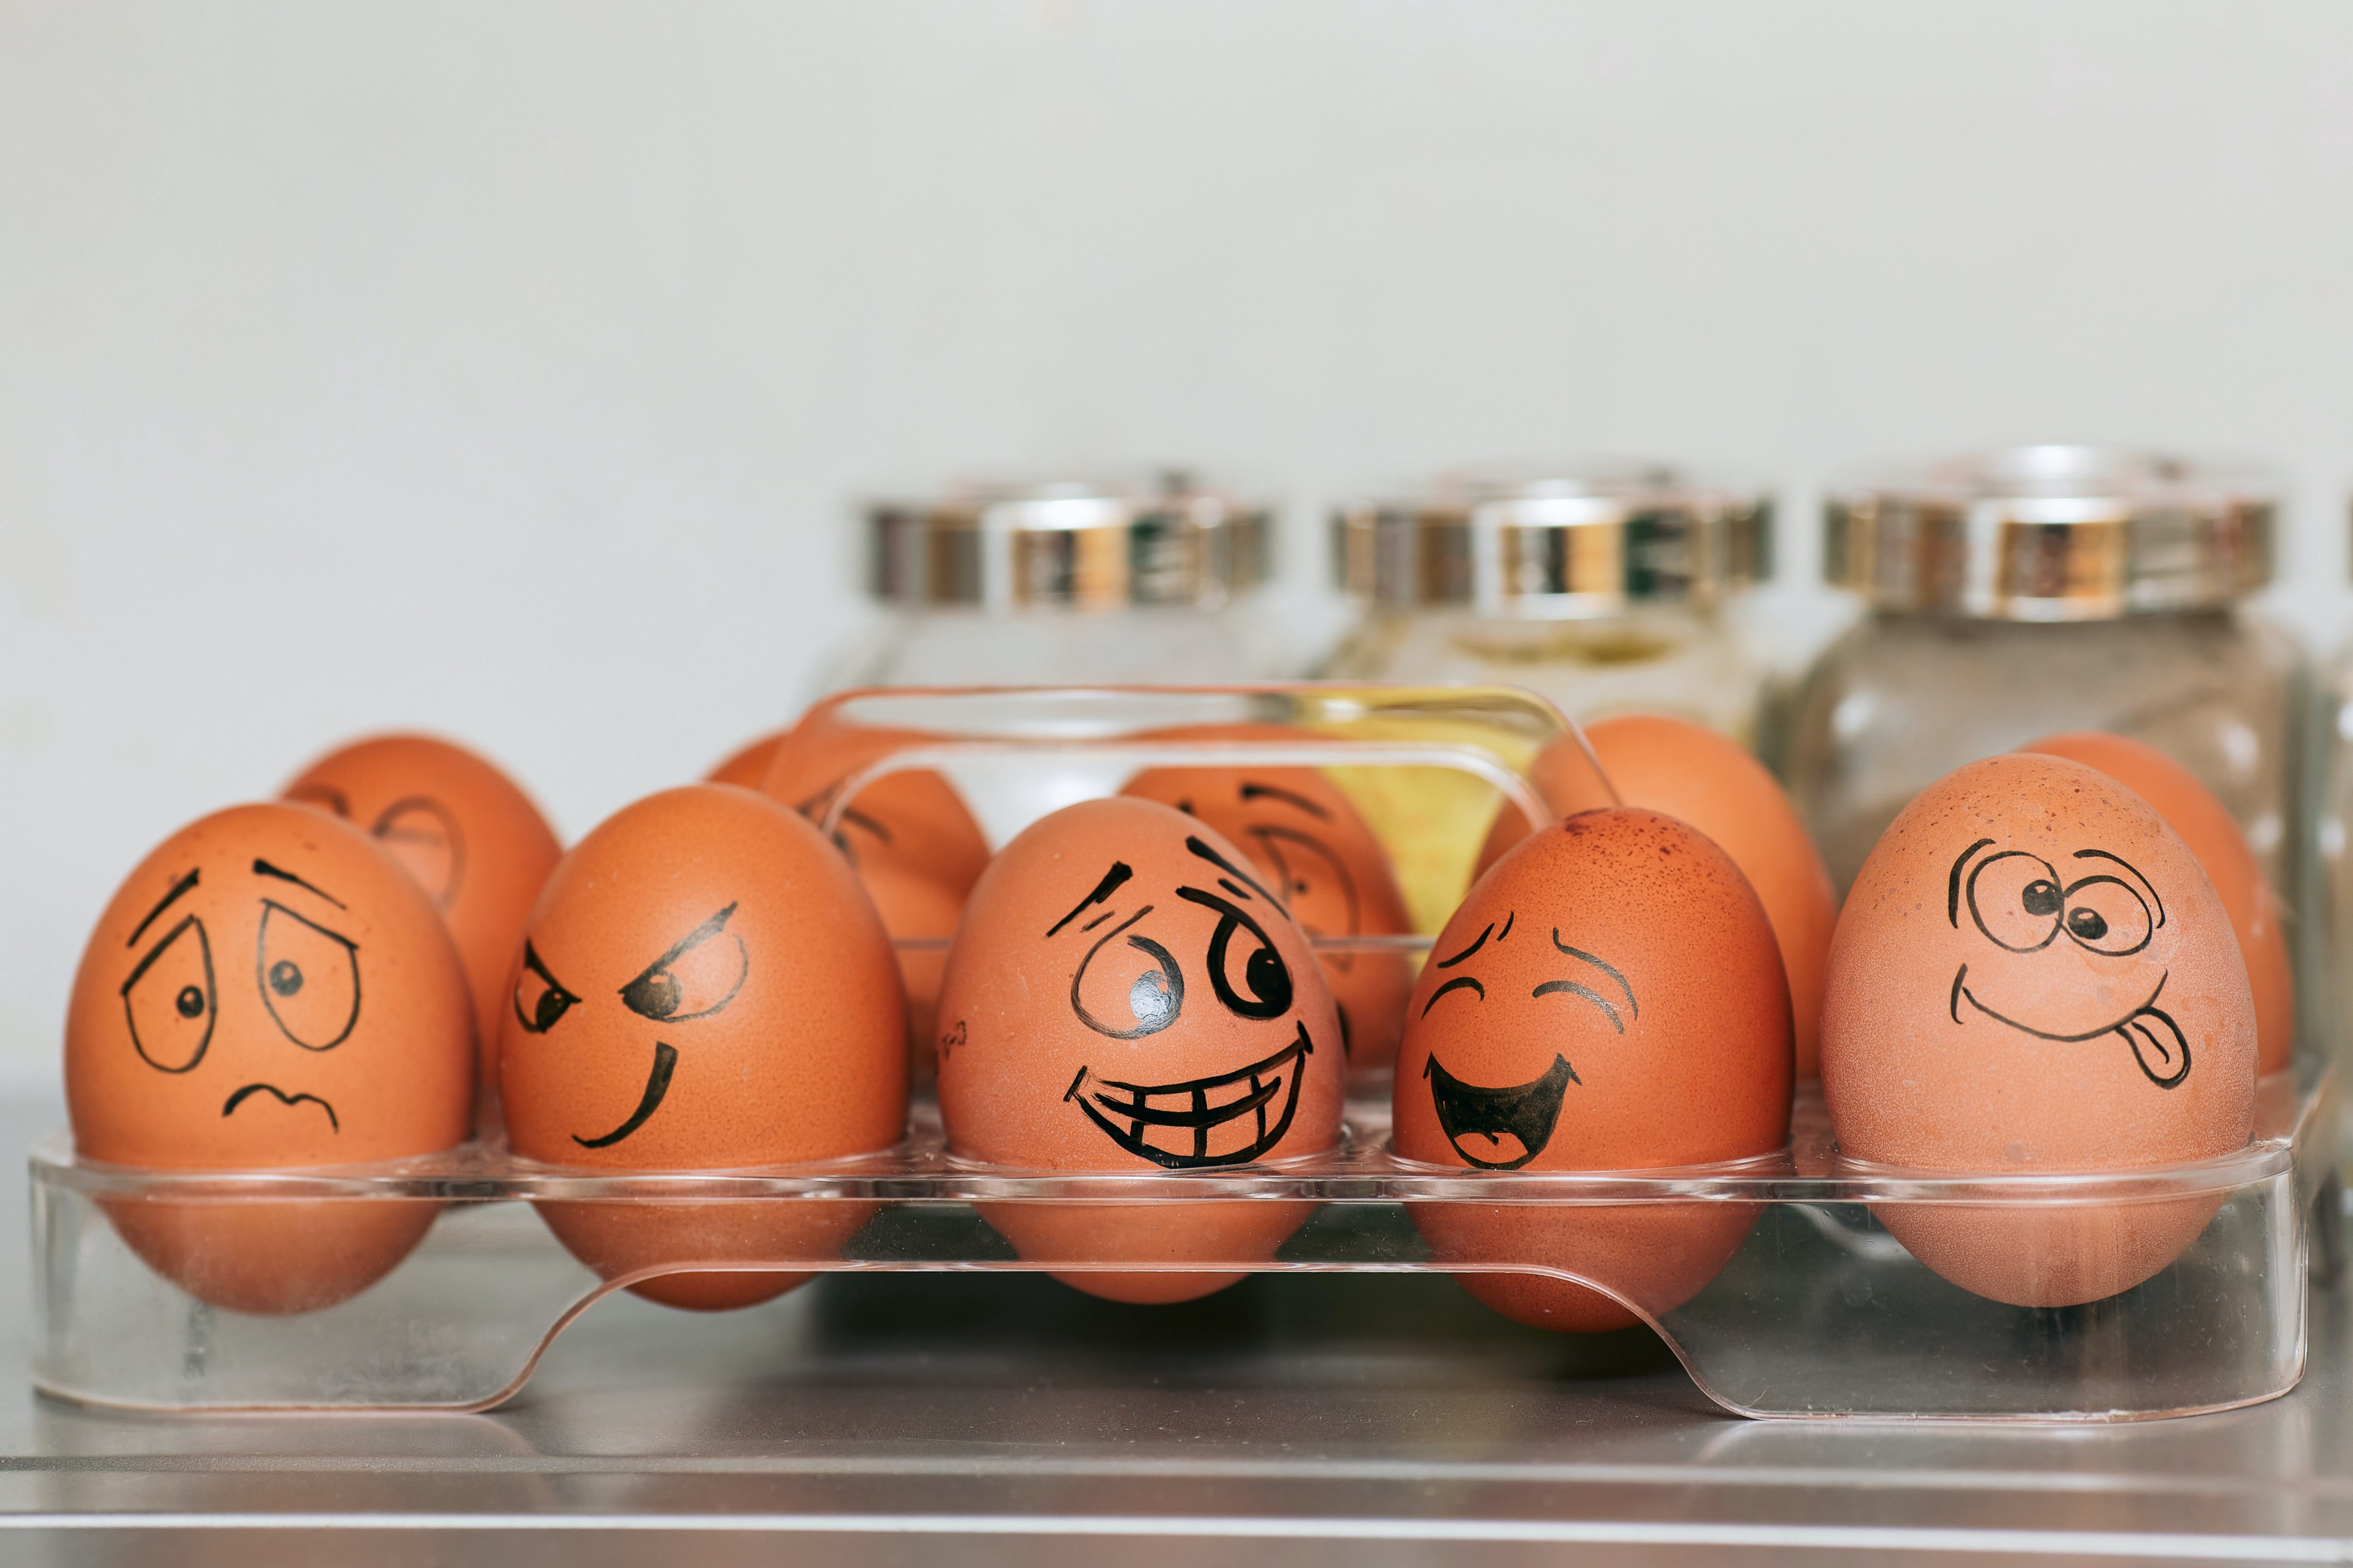 eggs with different facial expressions drawn on